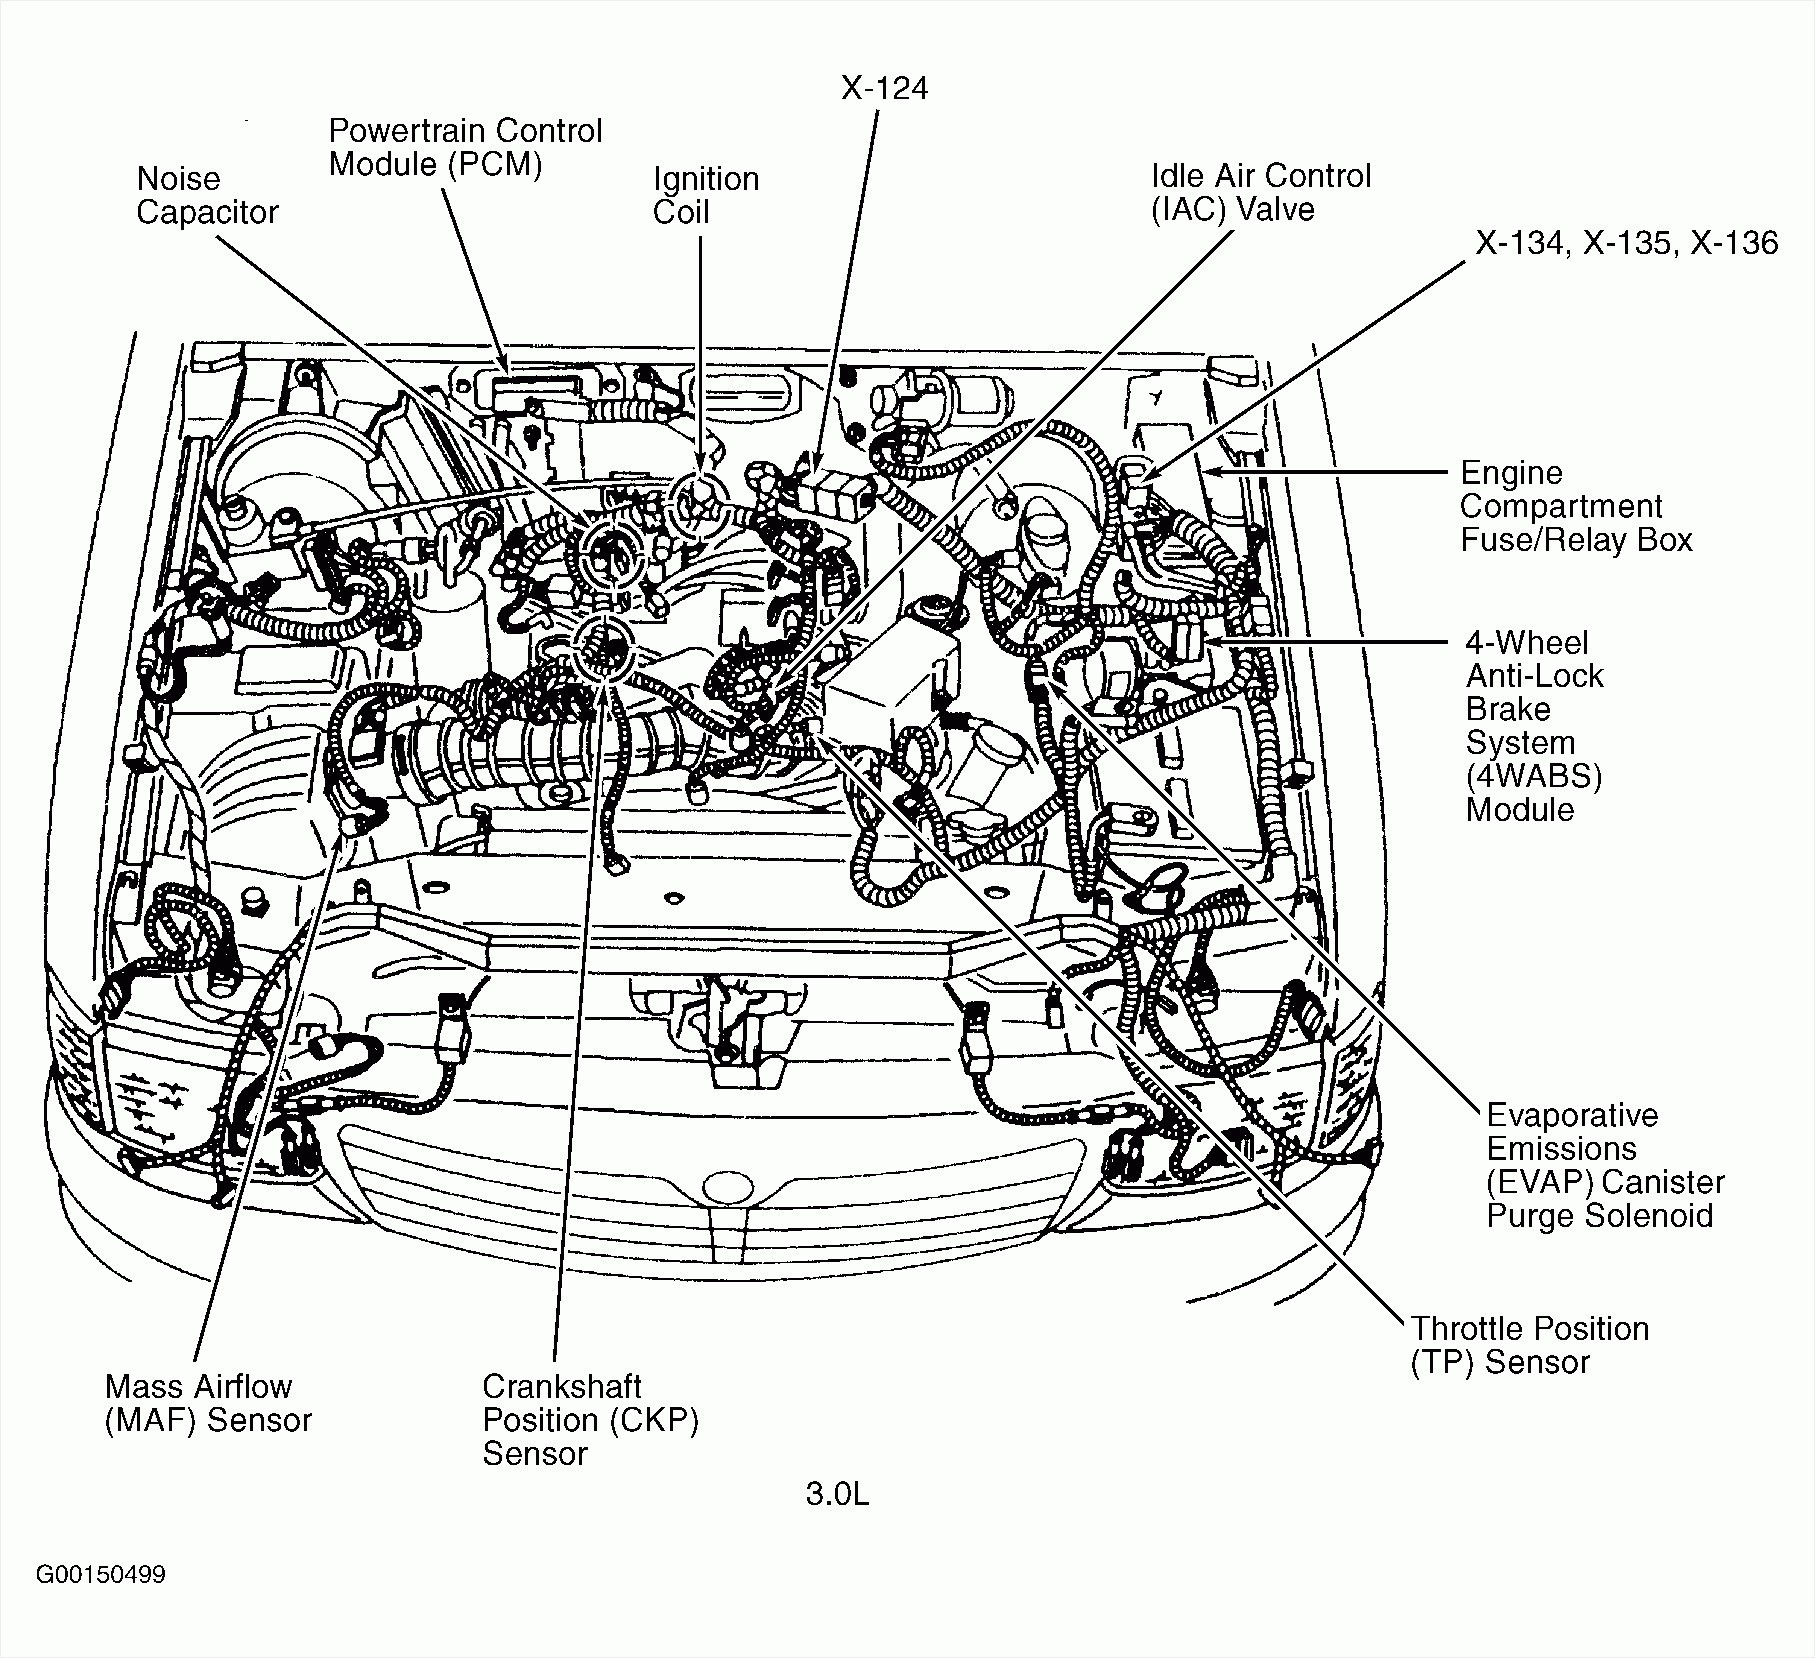 1989 chevy headlight switch wiring diagram 1965 chevy headlight switch wiring diagram